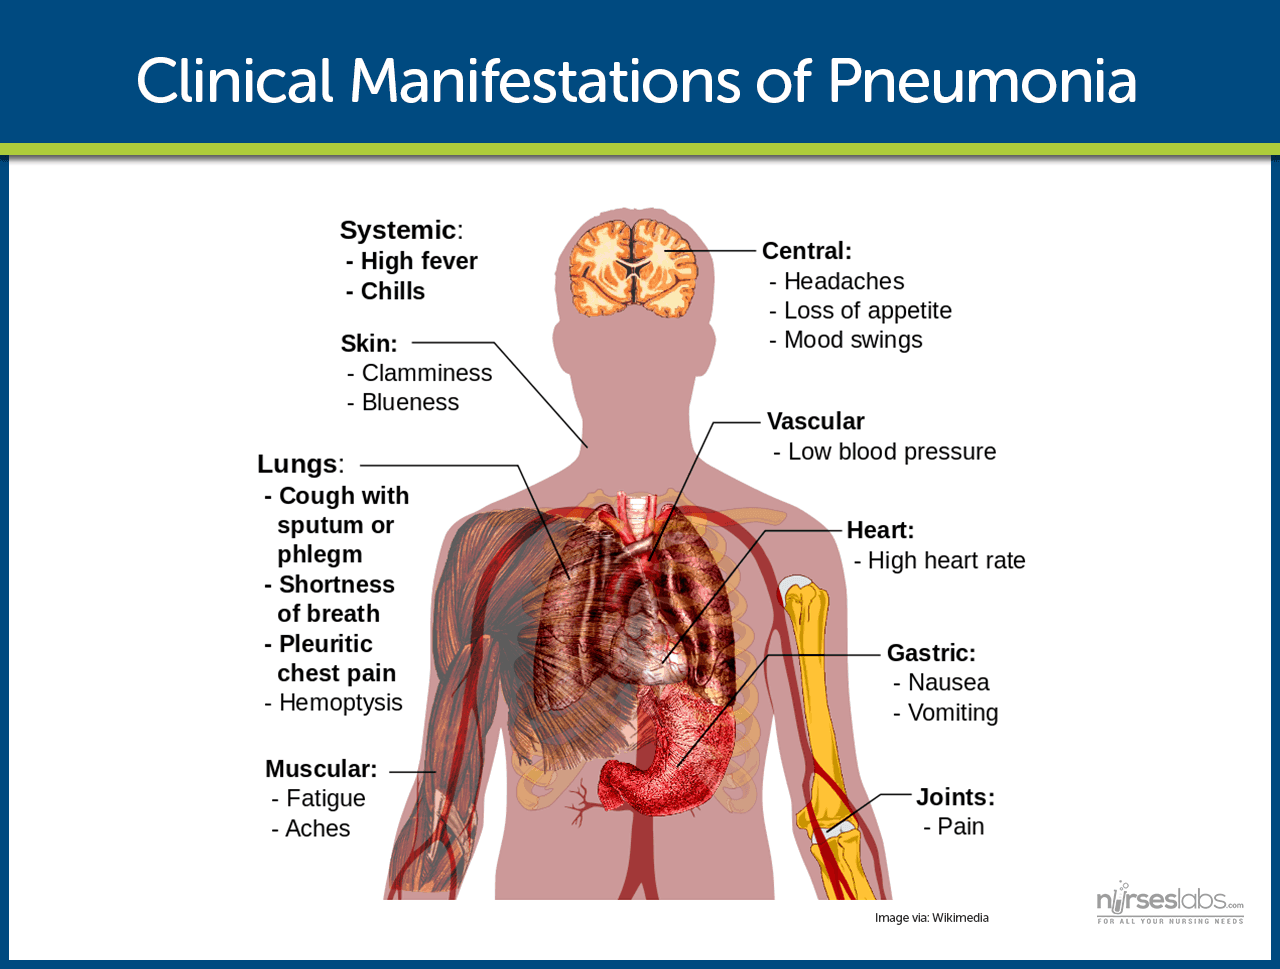 Clinical Manifestations - Pneumonia Patient PNG